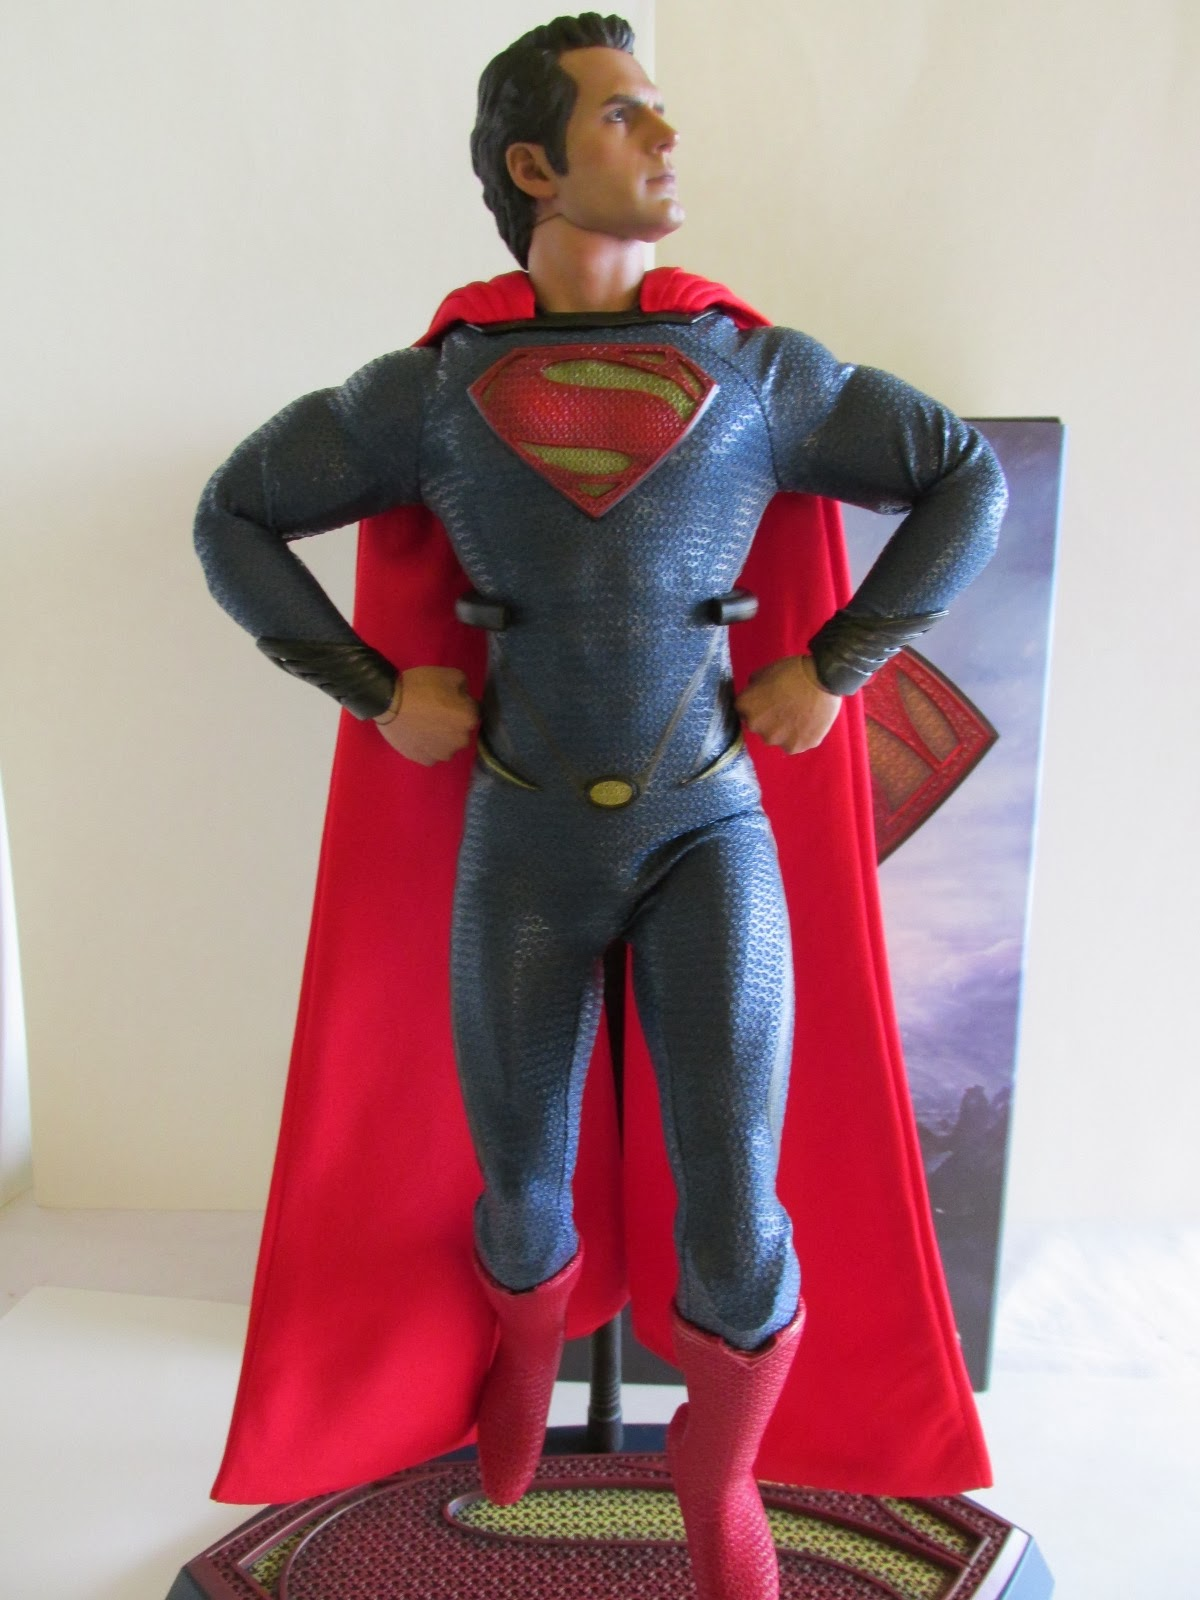 Hot Toys 1/6th scale Man of Steel Superman   Toy RE:action